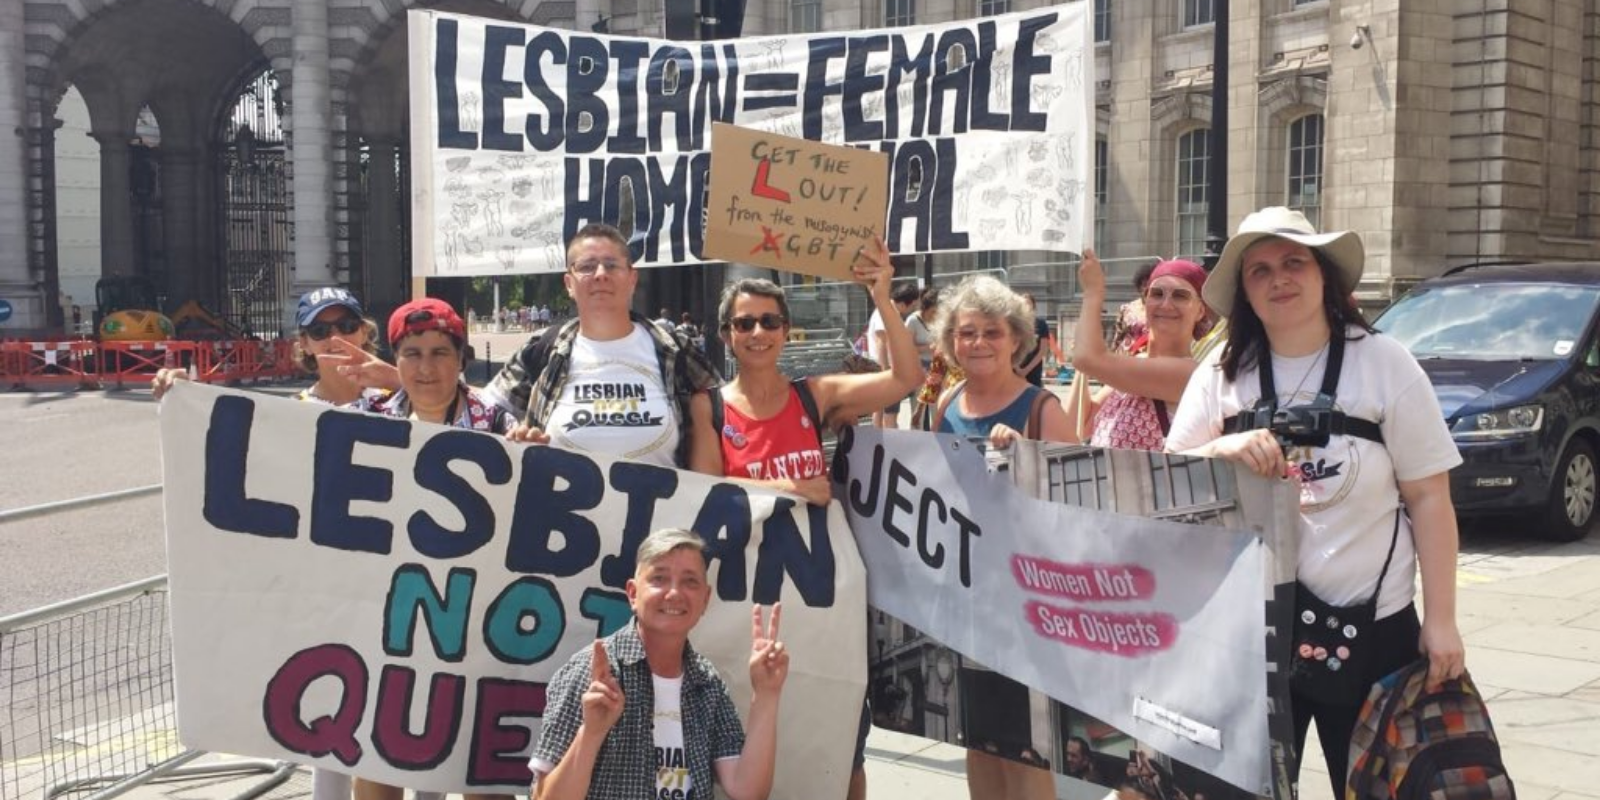 Women's Liberation Front releases Media Style Guide to take back language from trans ideologues